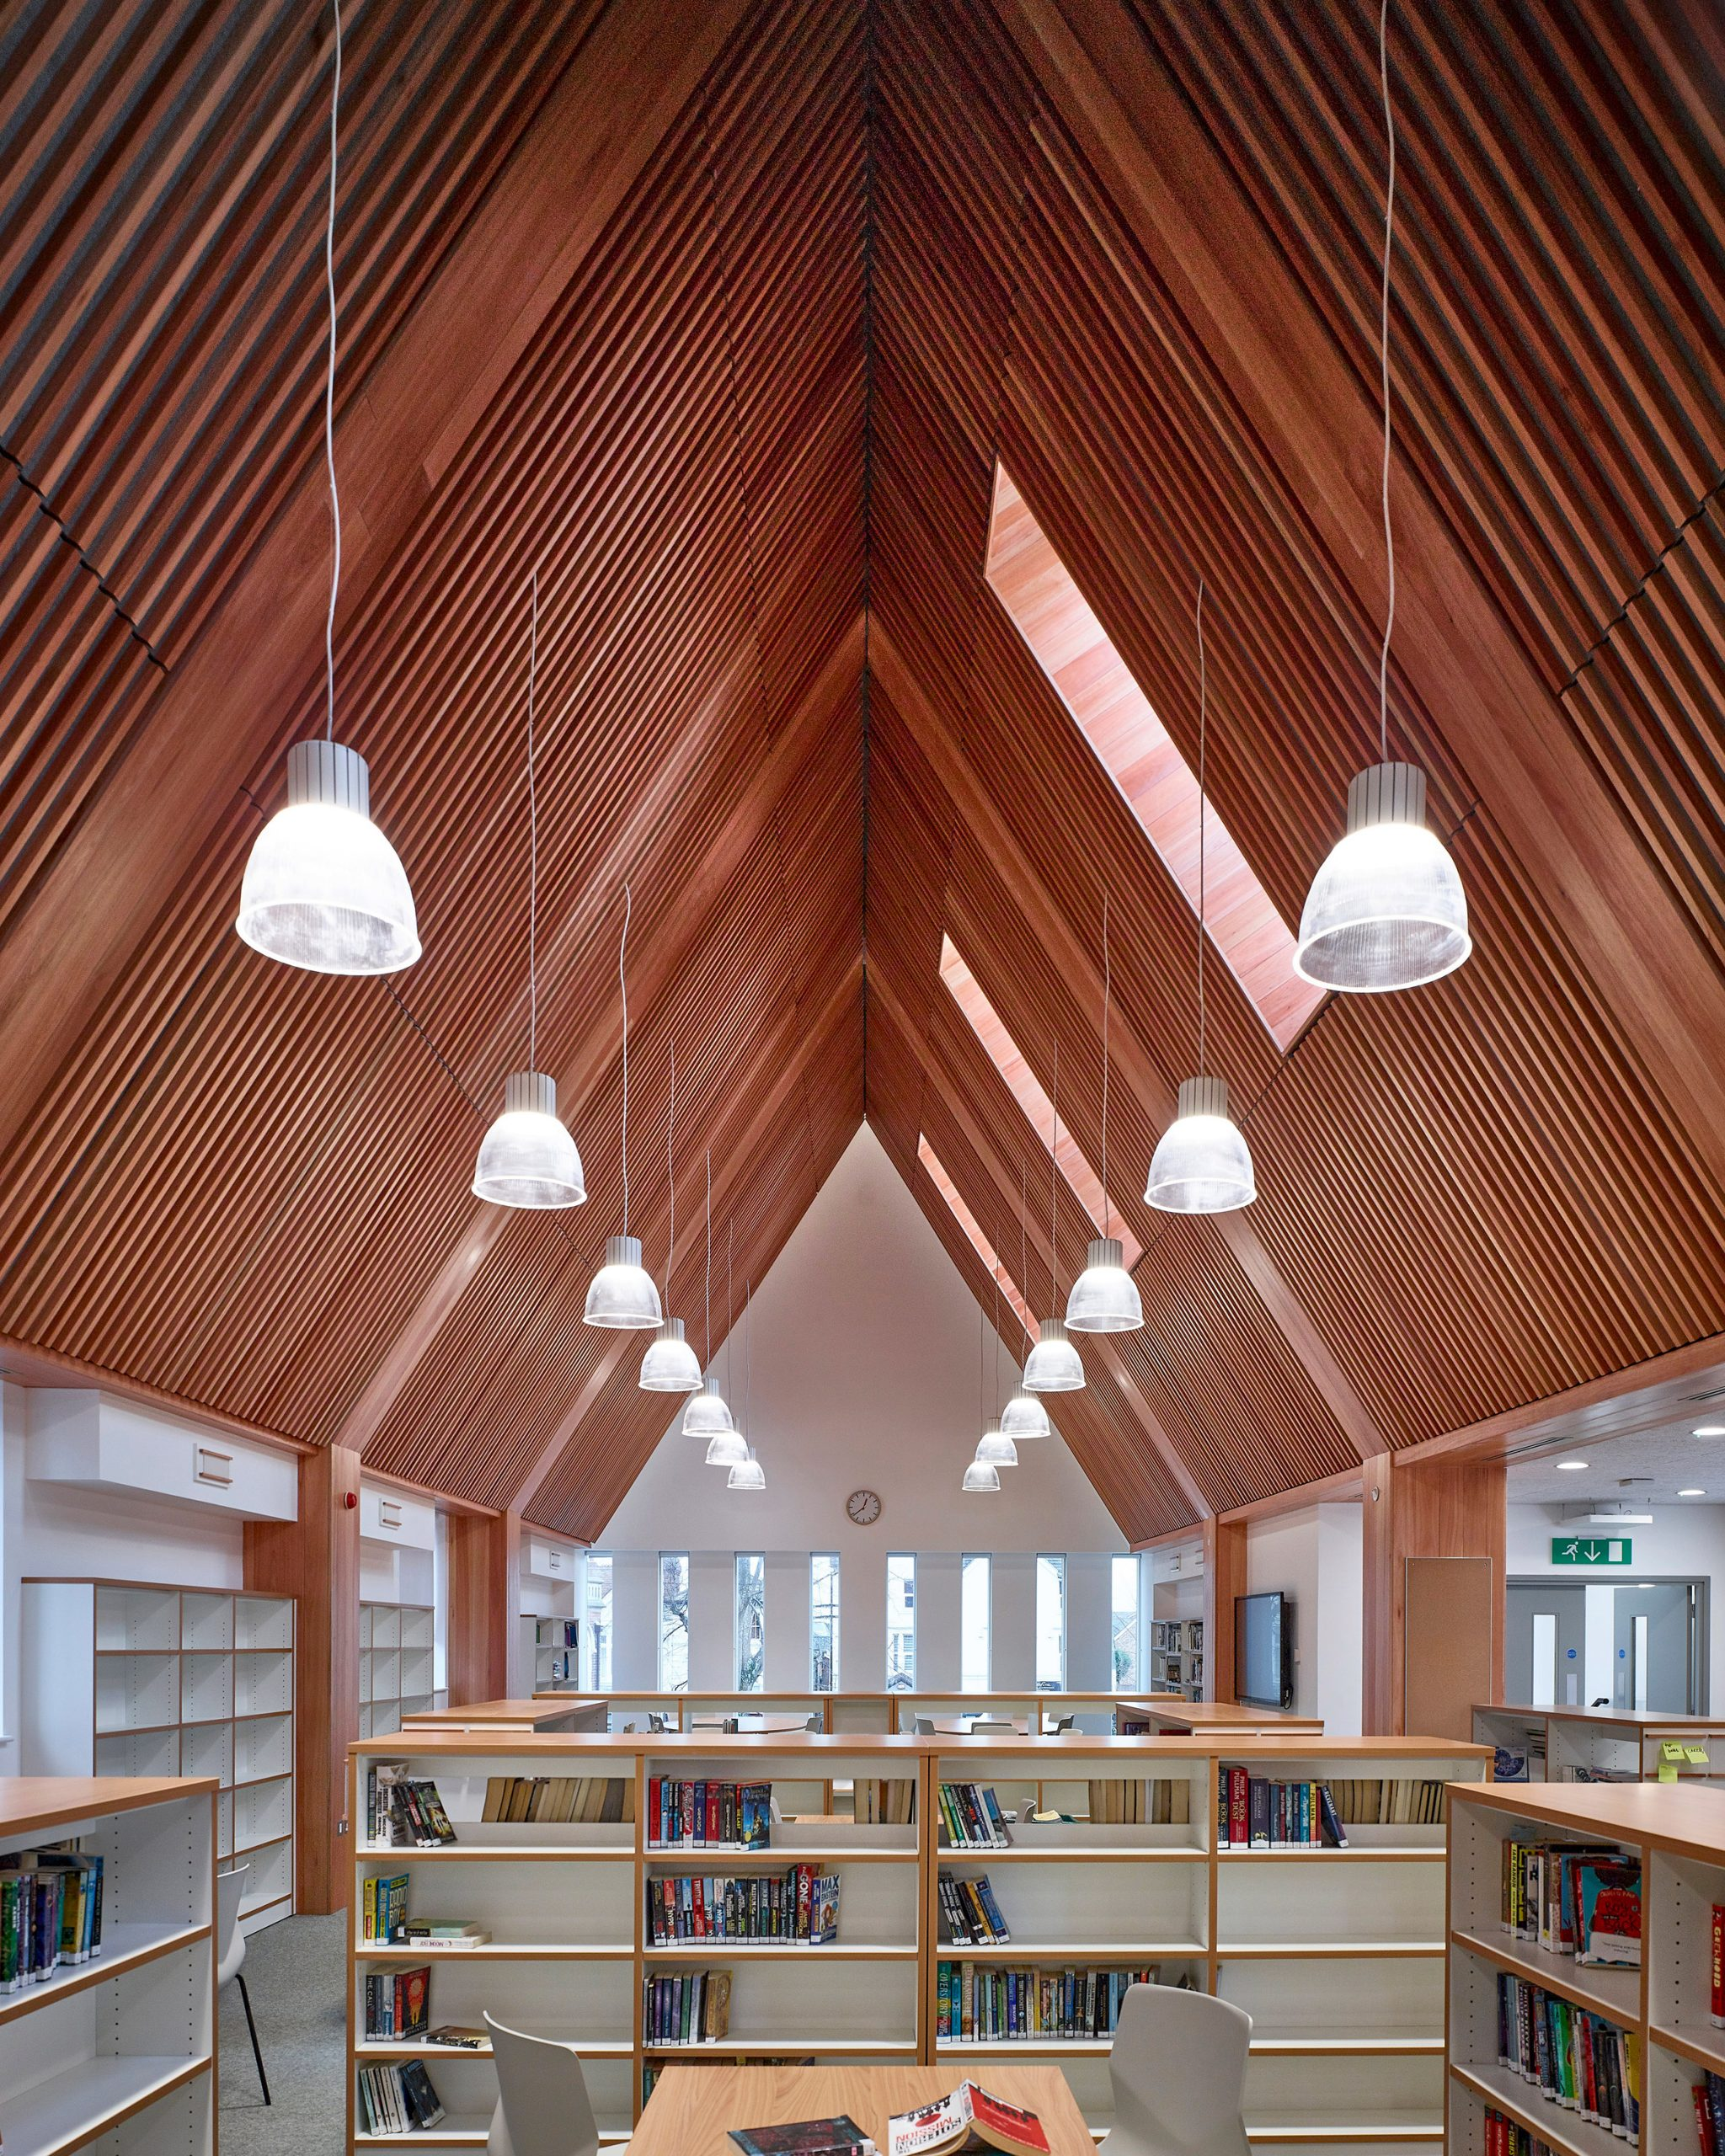 Library in roof of new build by Bell Phillips Architects